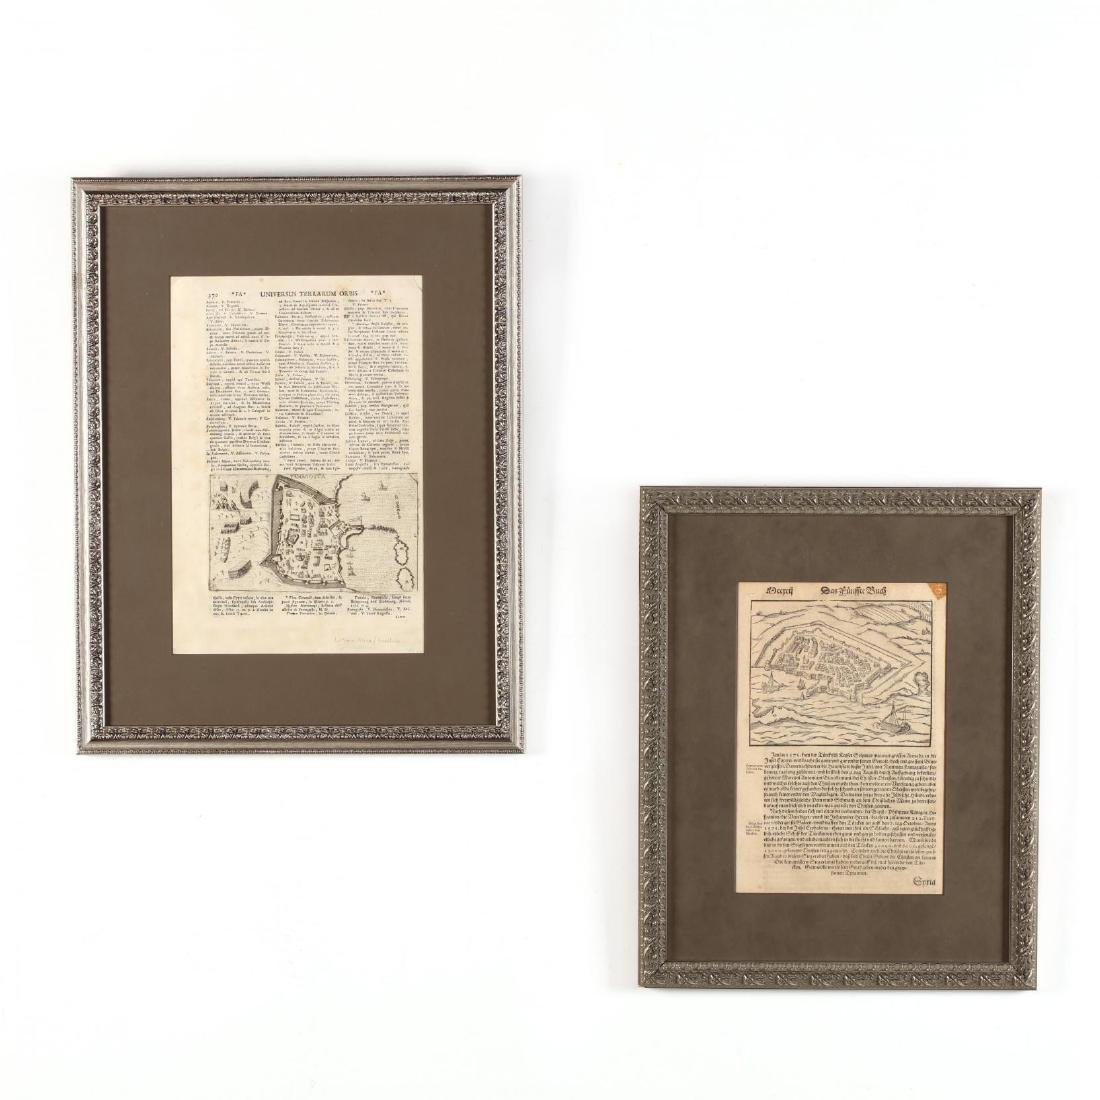 Two Disbound Book Leaves Showing the 1571 Siege of